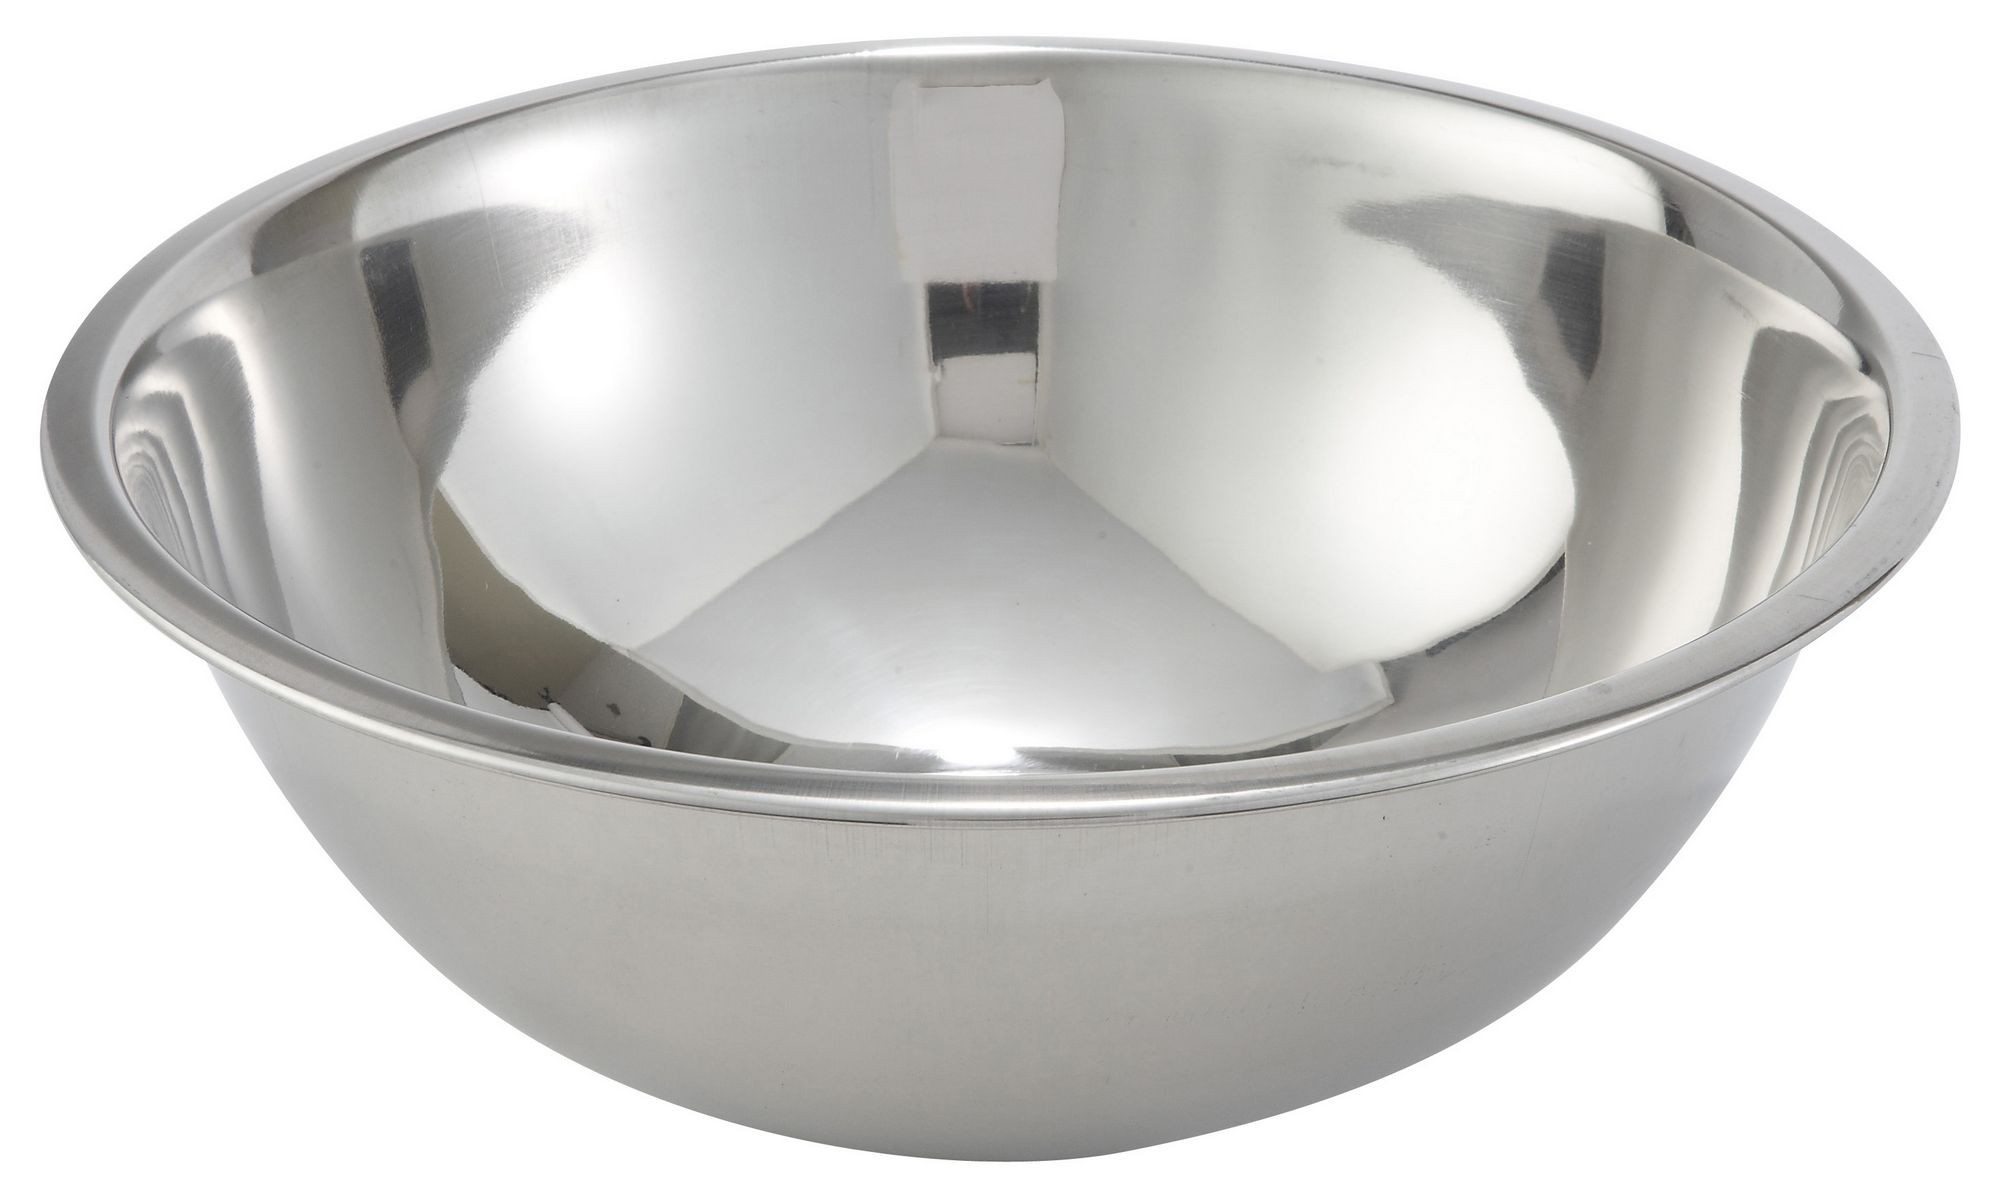 Winco MXBT-500Q Stainless Steel All-Purpose Mixing Bowl 5 Qt.